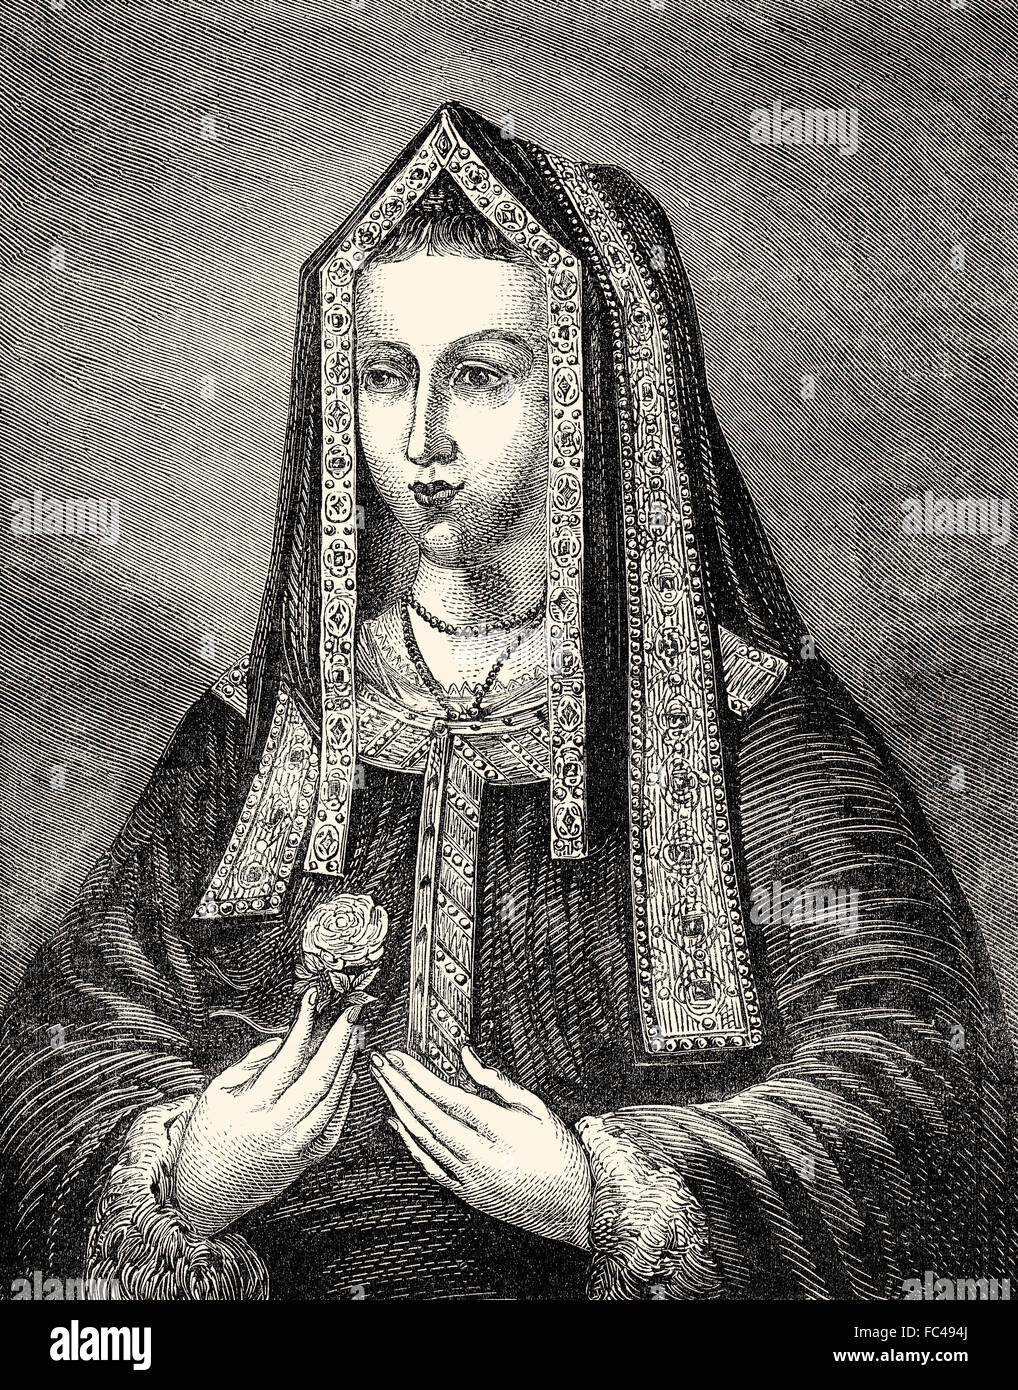 Elizabeth of York, 1466-1503, queen consort of England from 1486 until her death, wife of Henry VII - Stock Image